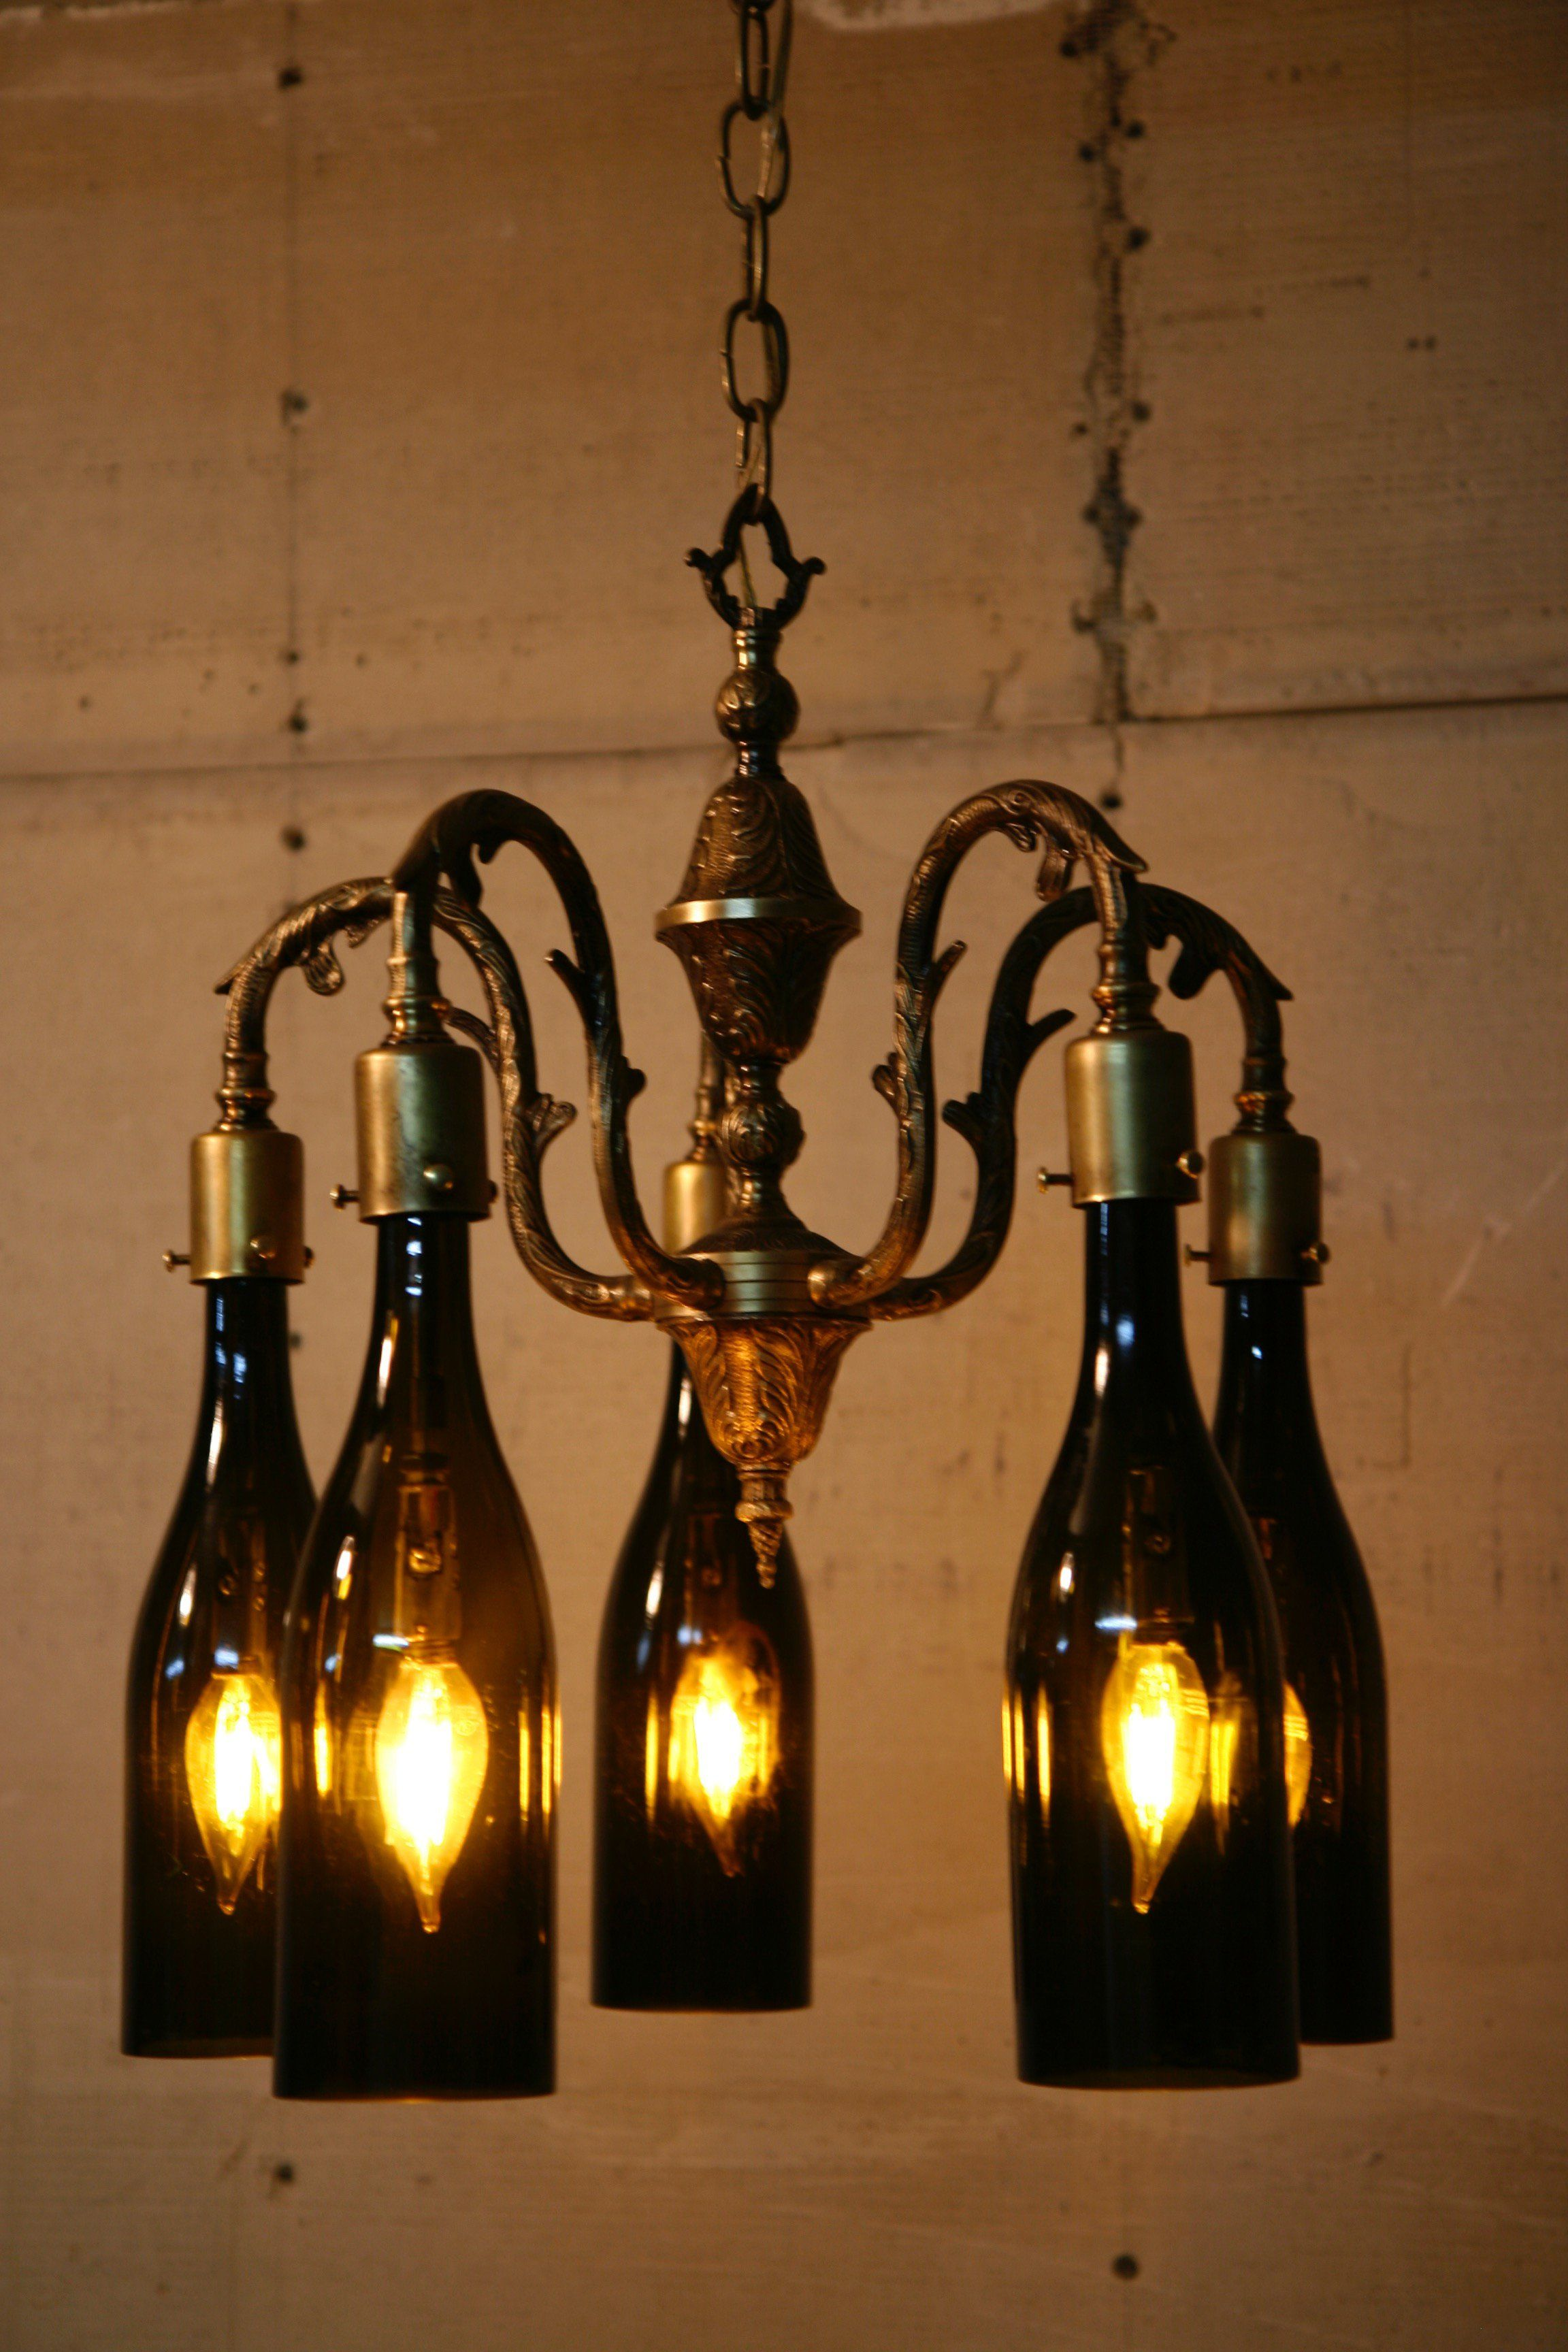 c73199b14d9b Recycled Antique Chandelier Using Wine Bottles As Globes | Garage ...